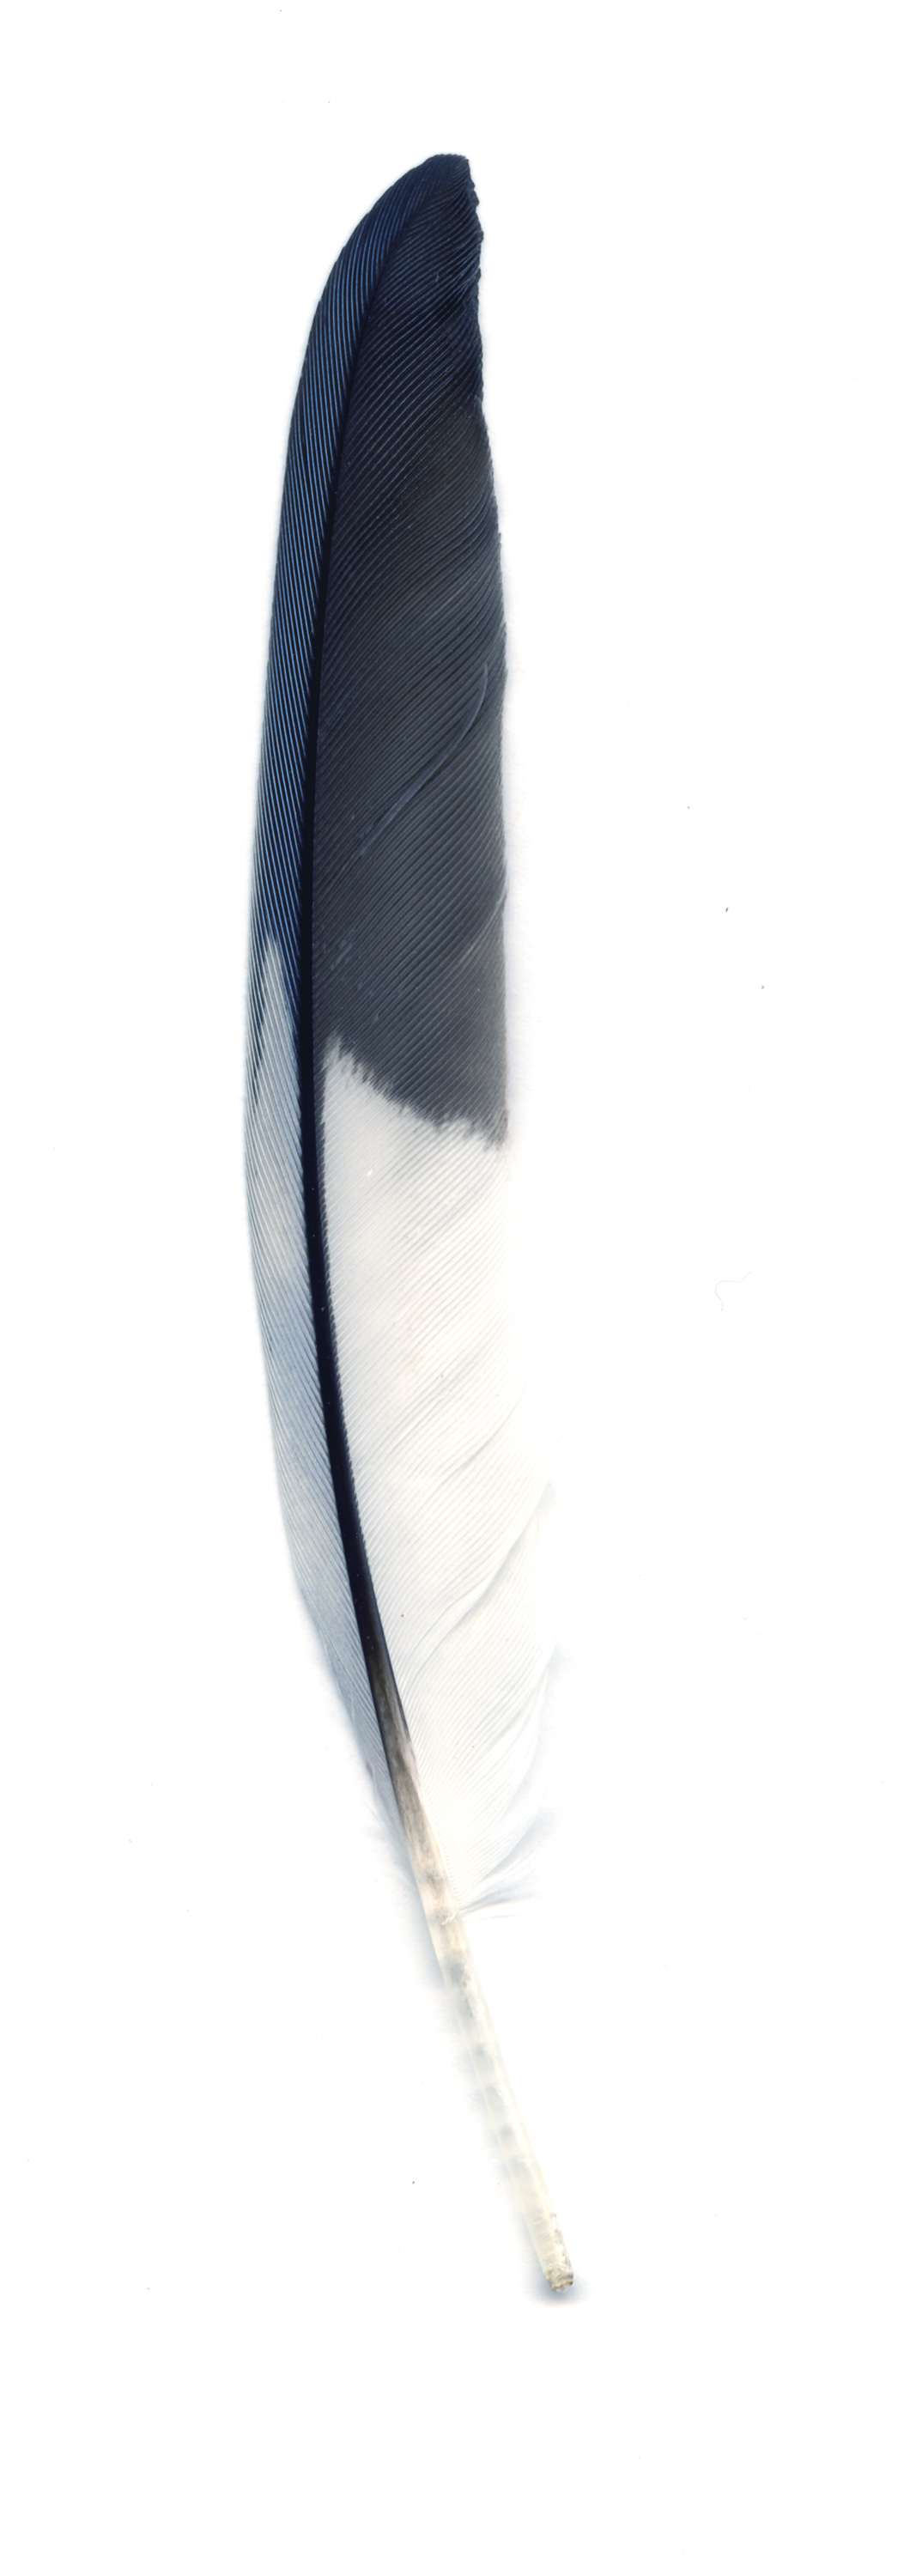 11_white_gray_blue_feather_1.jpg